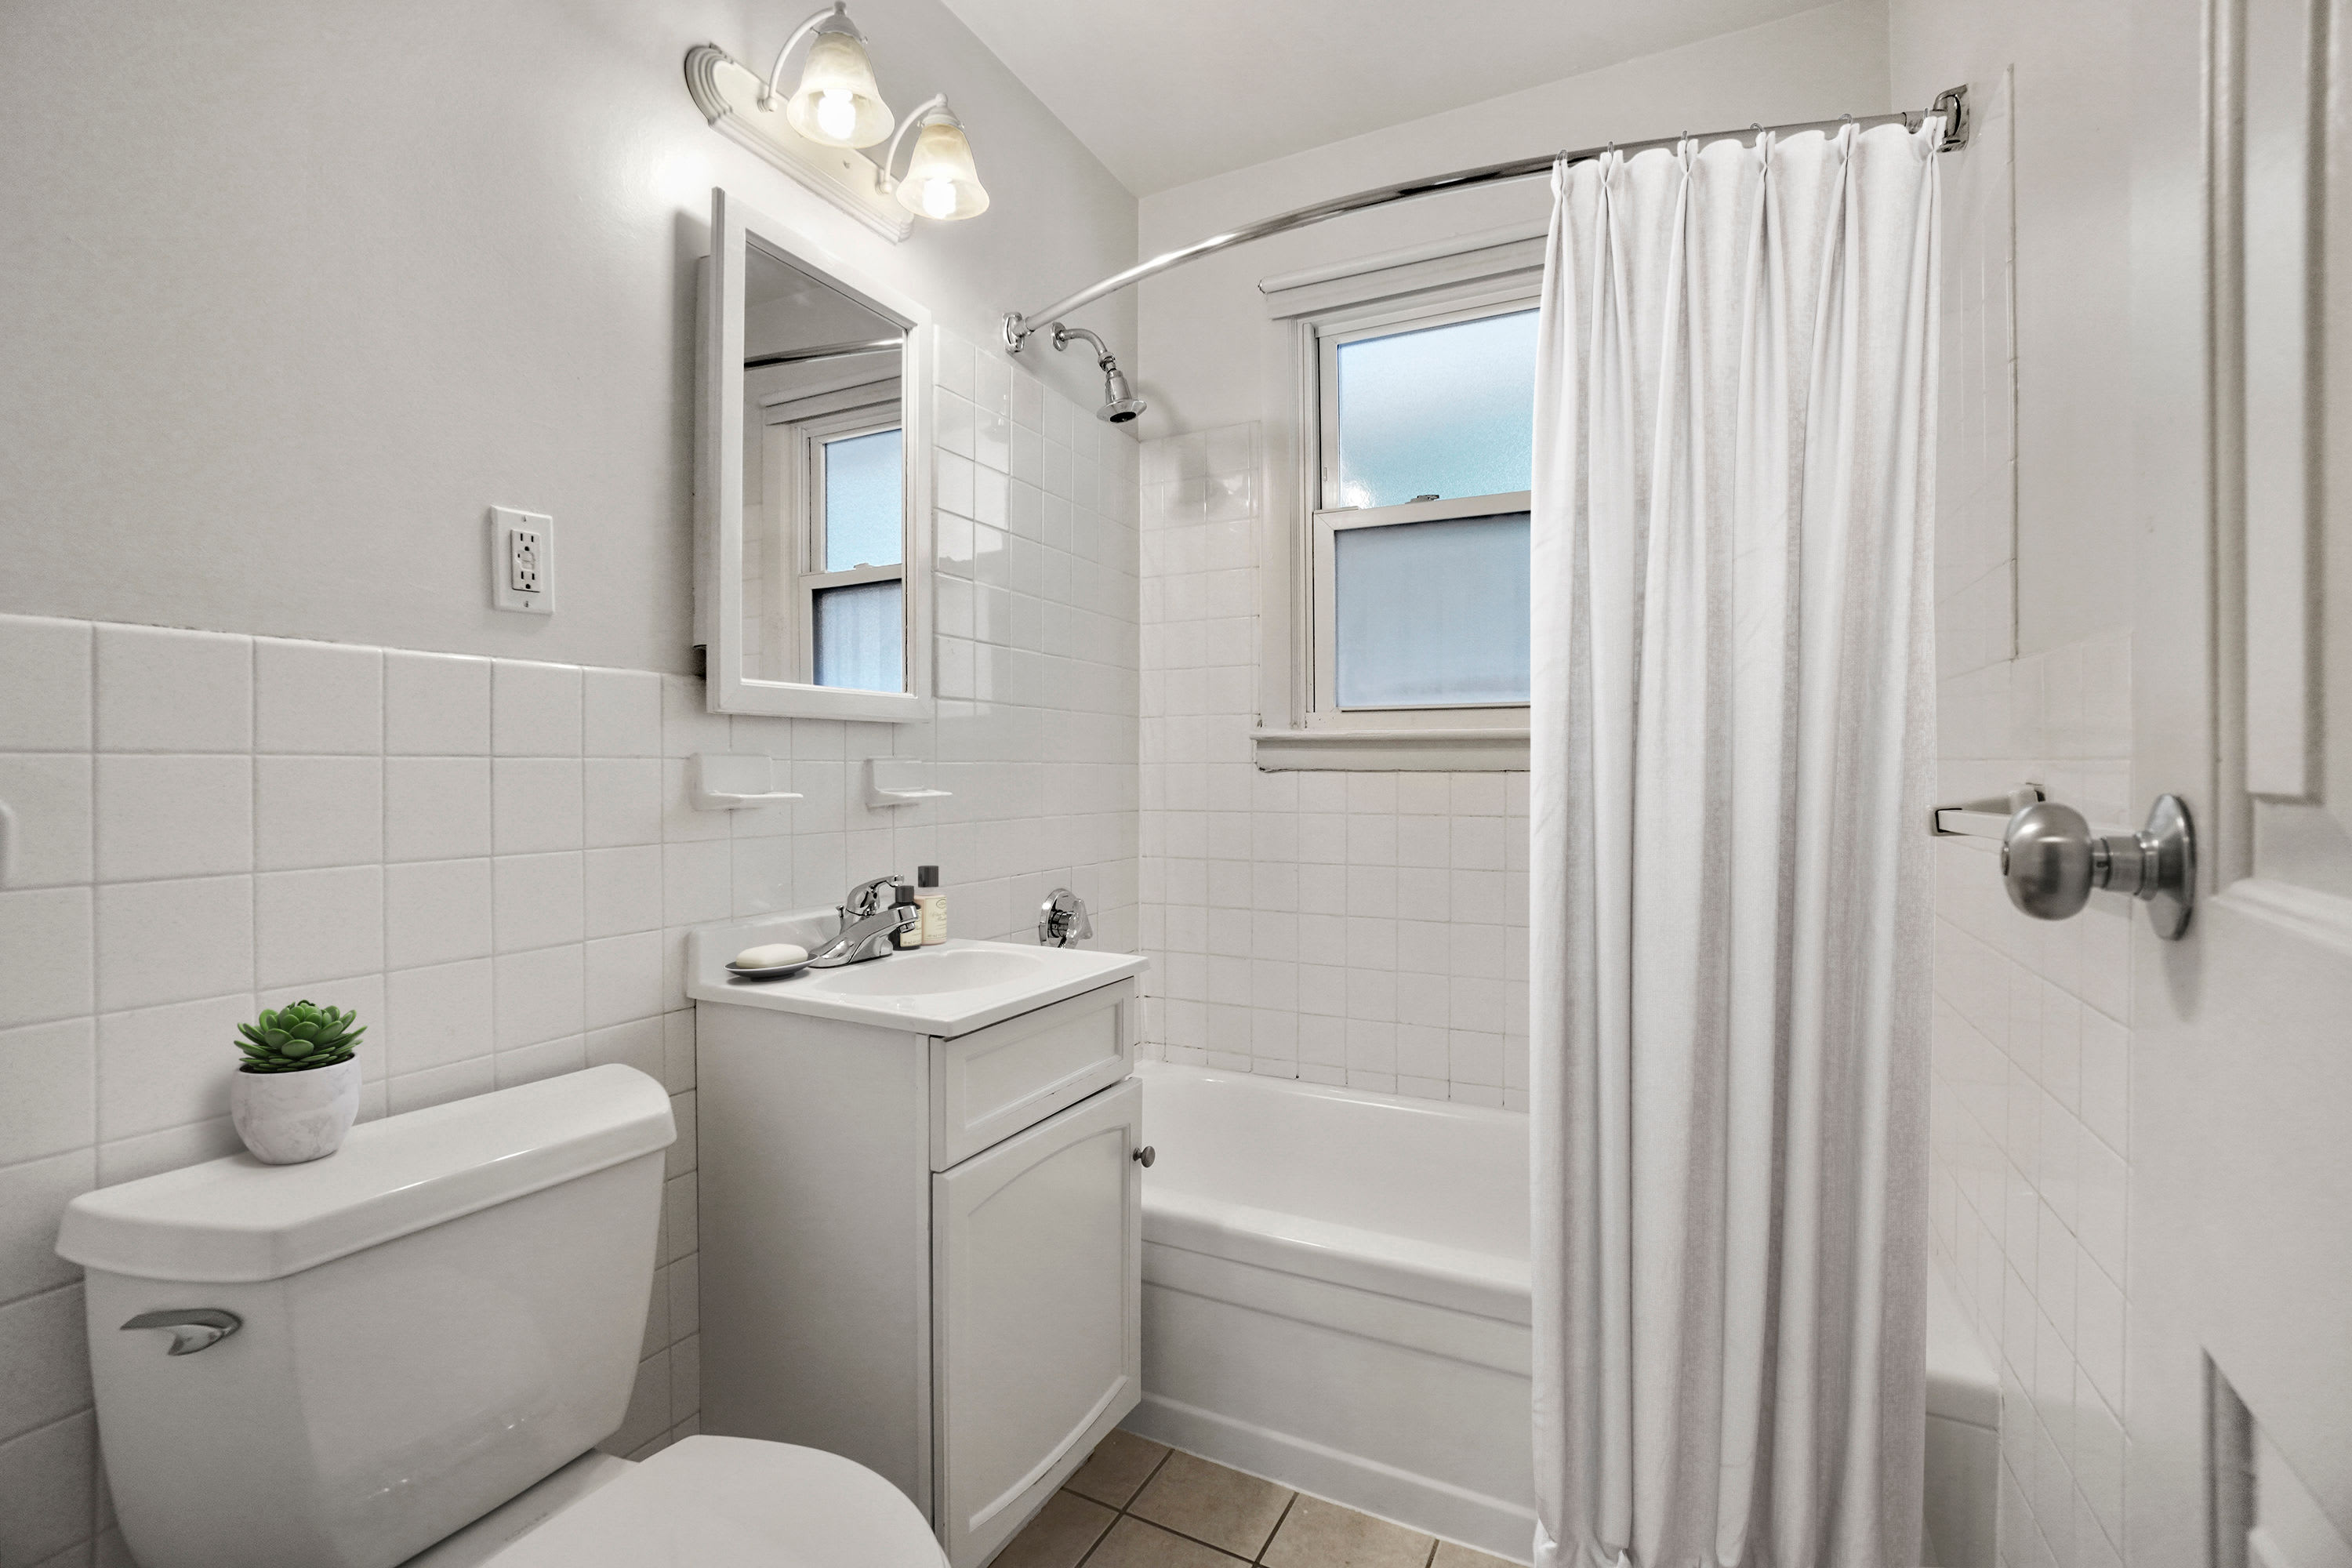 Rendered furnished bathroom at President Village in Fall River, Massachusetts